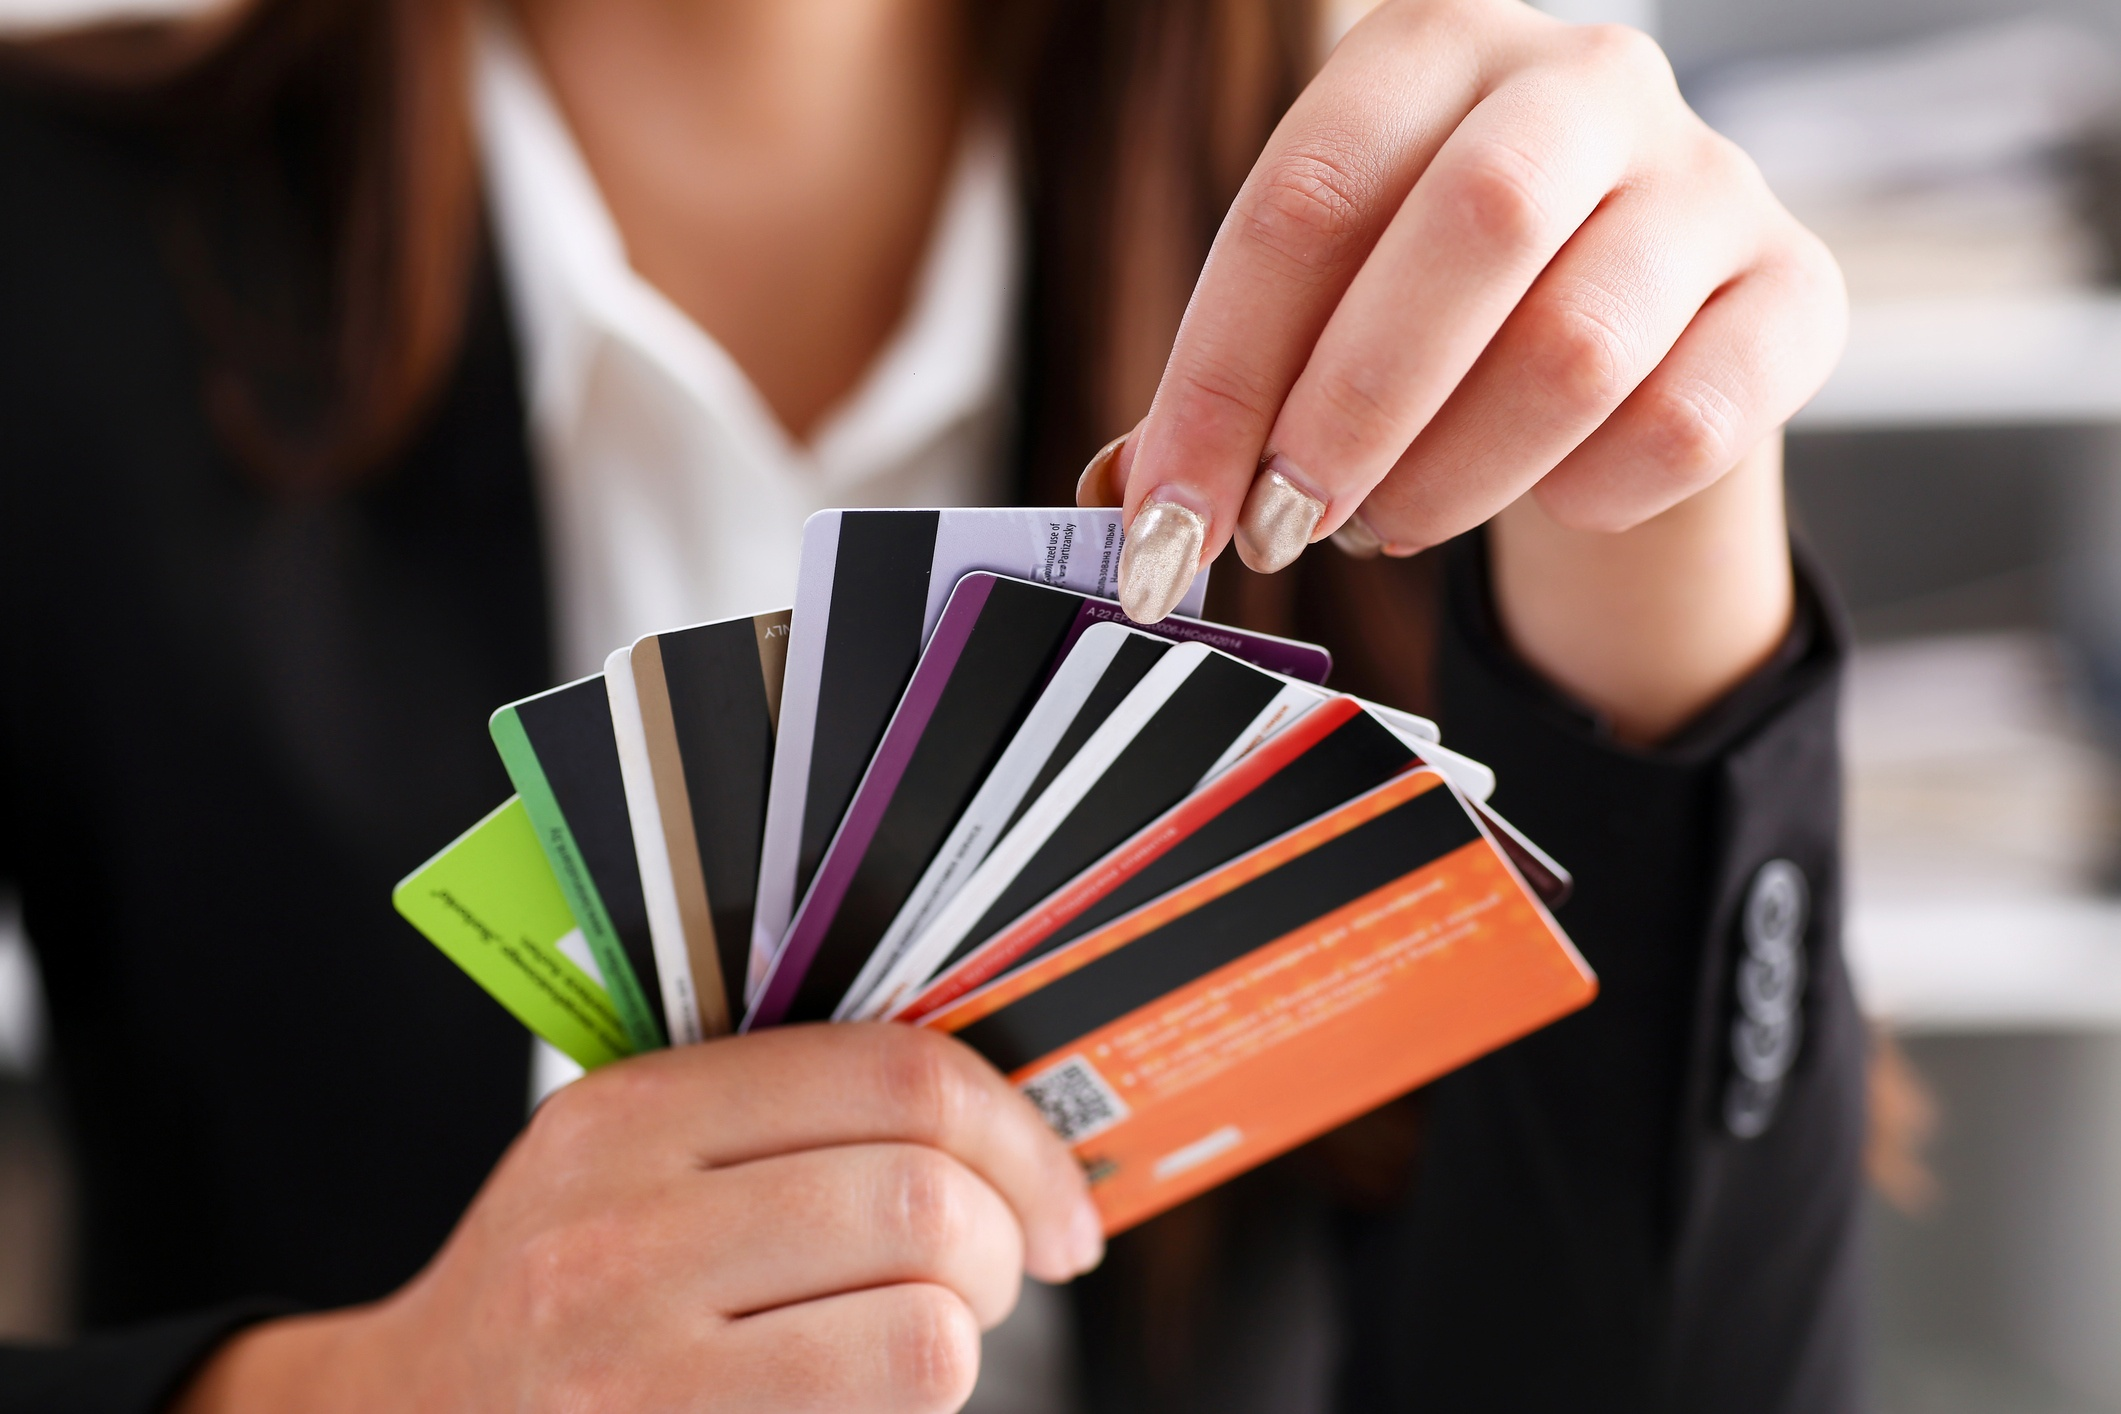 A person holding a fan of credit cards.